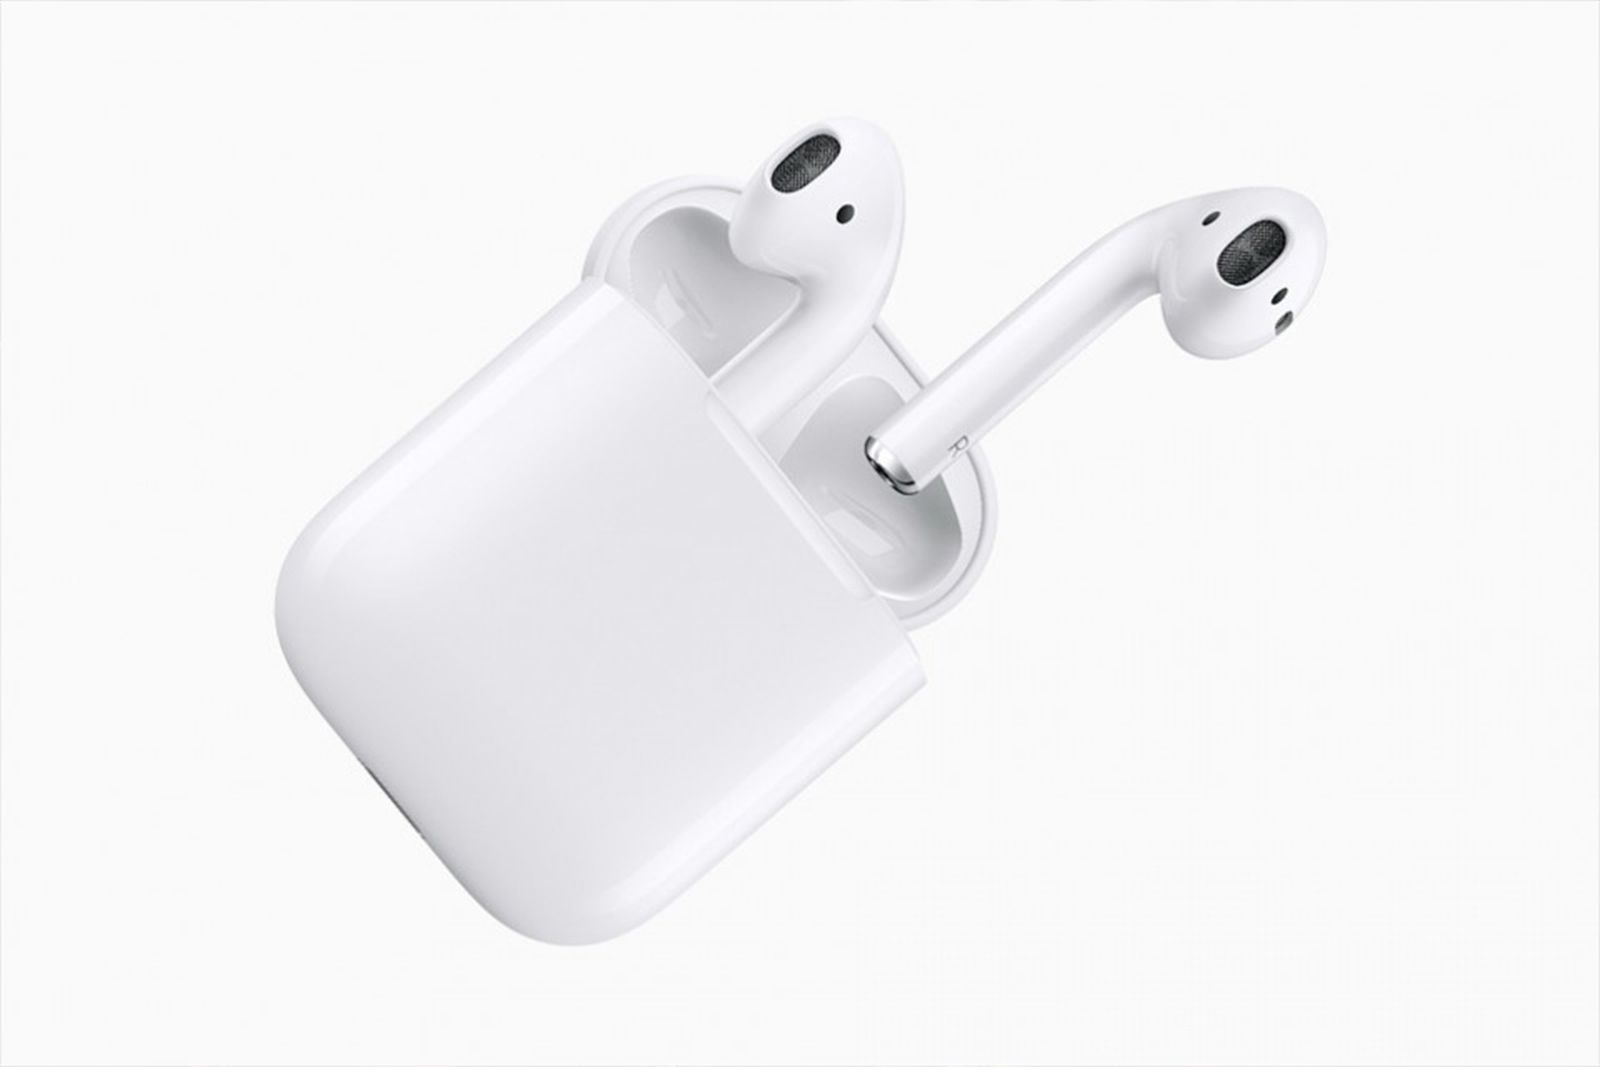 apple trolling appearance airpower Airpower Charging pad